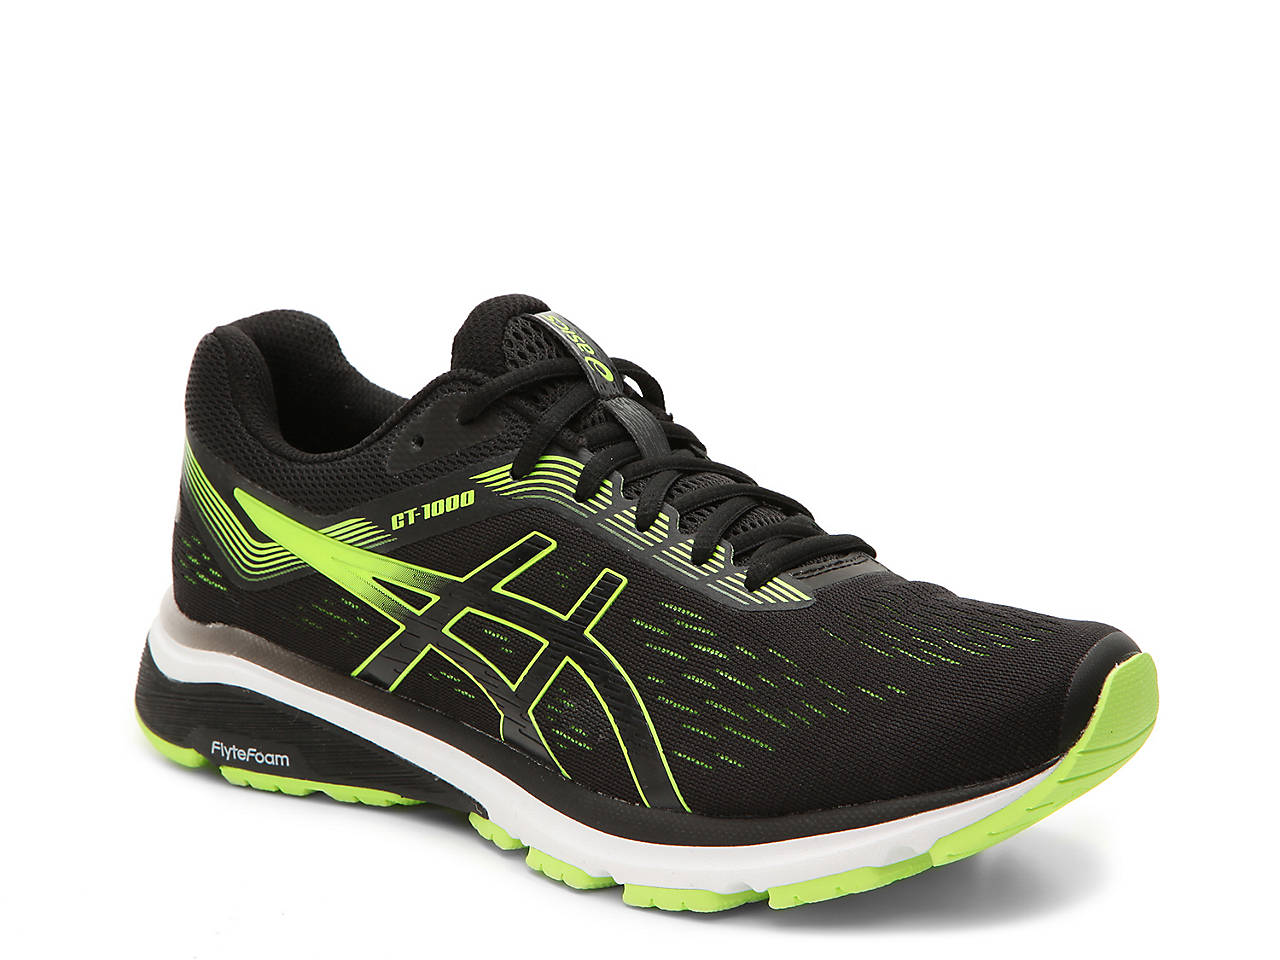 dc1f849122 ASICS GT-1000 7 Performance Running Shoe - Men's Men's Shoes | DSW